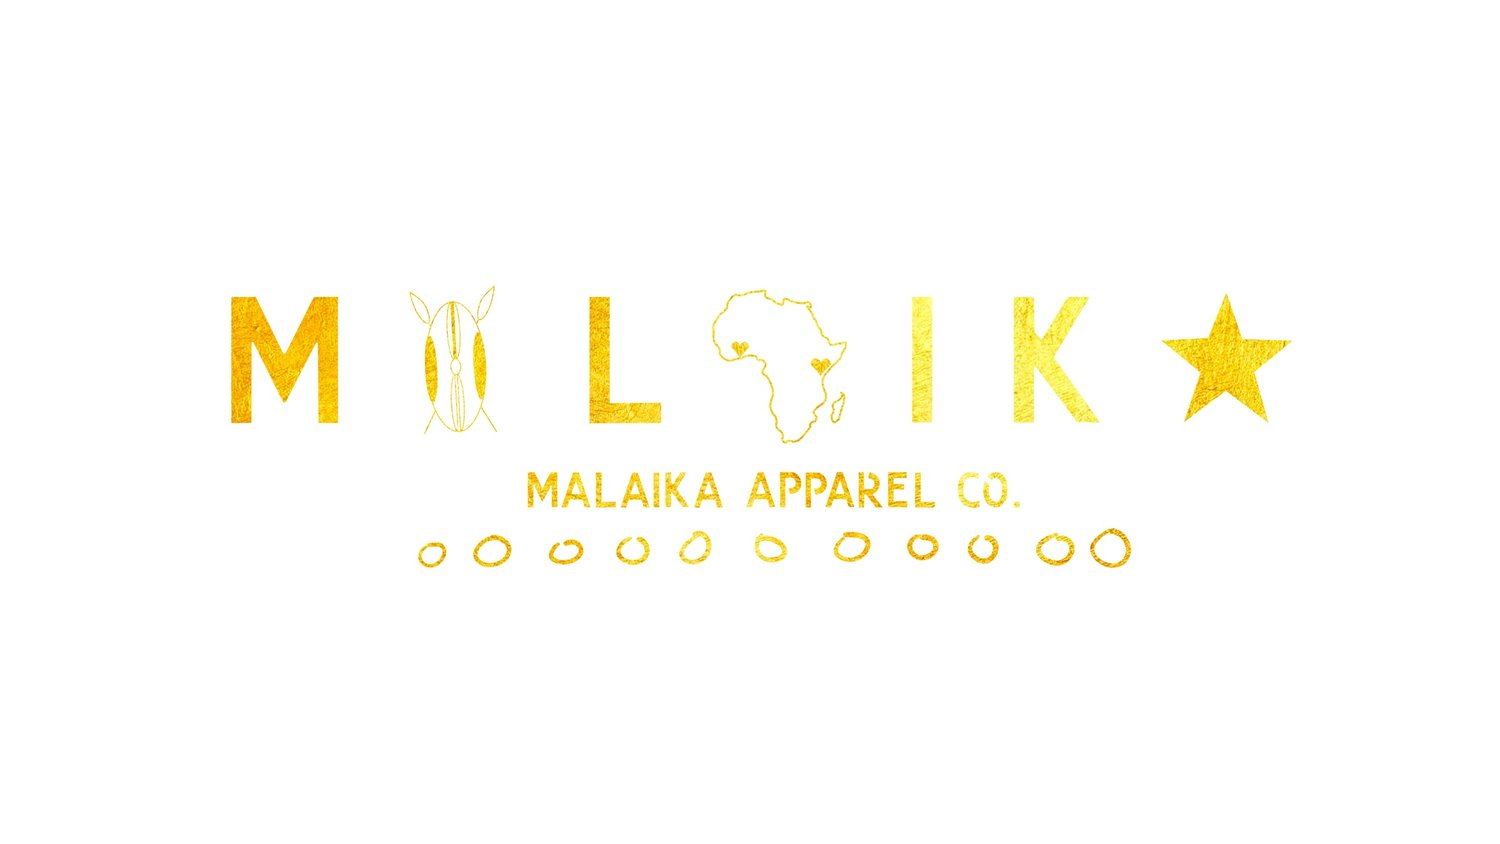 Malaika Apparel Co.